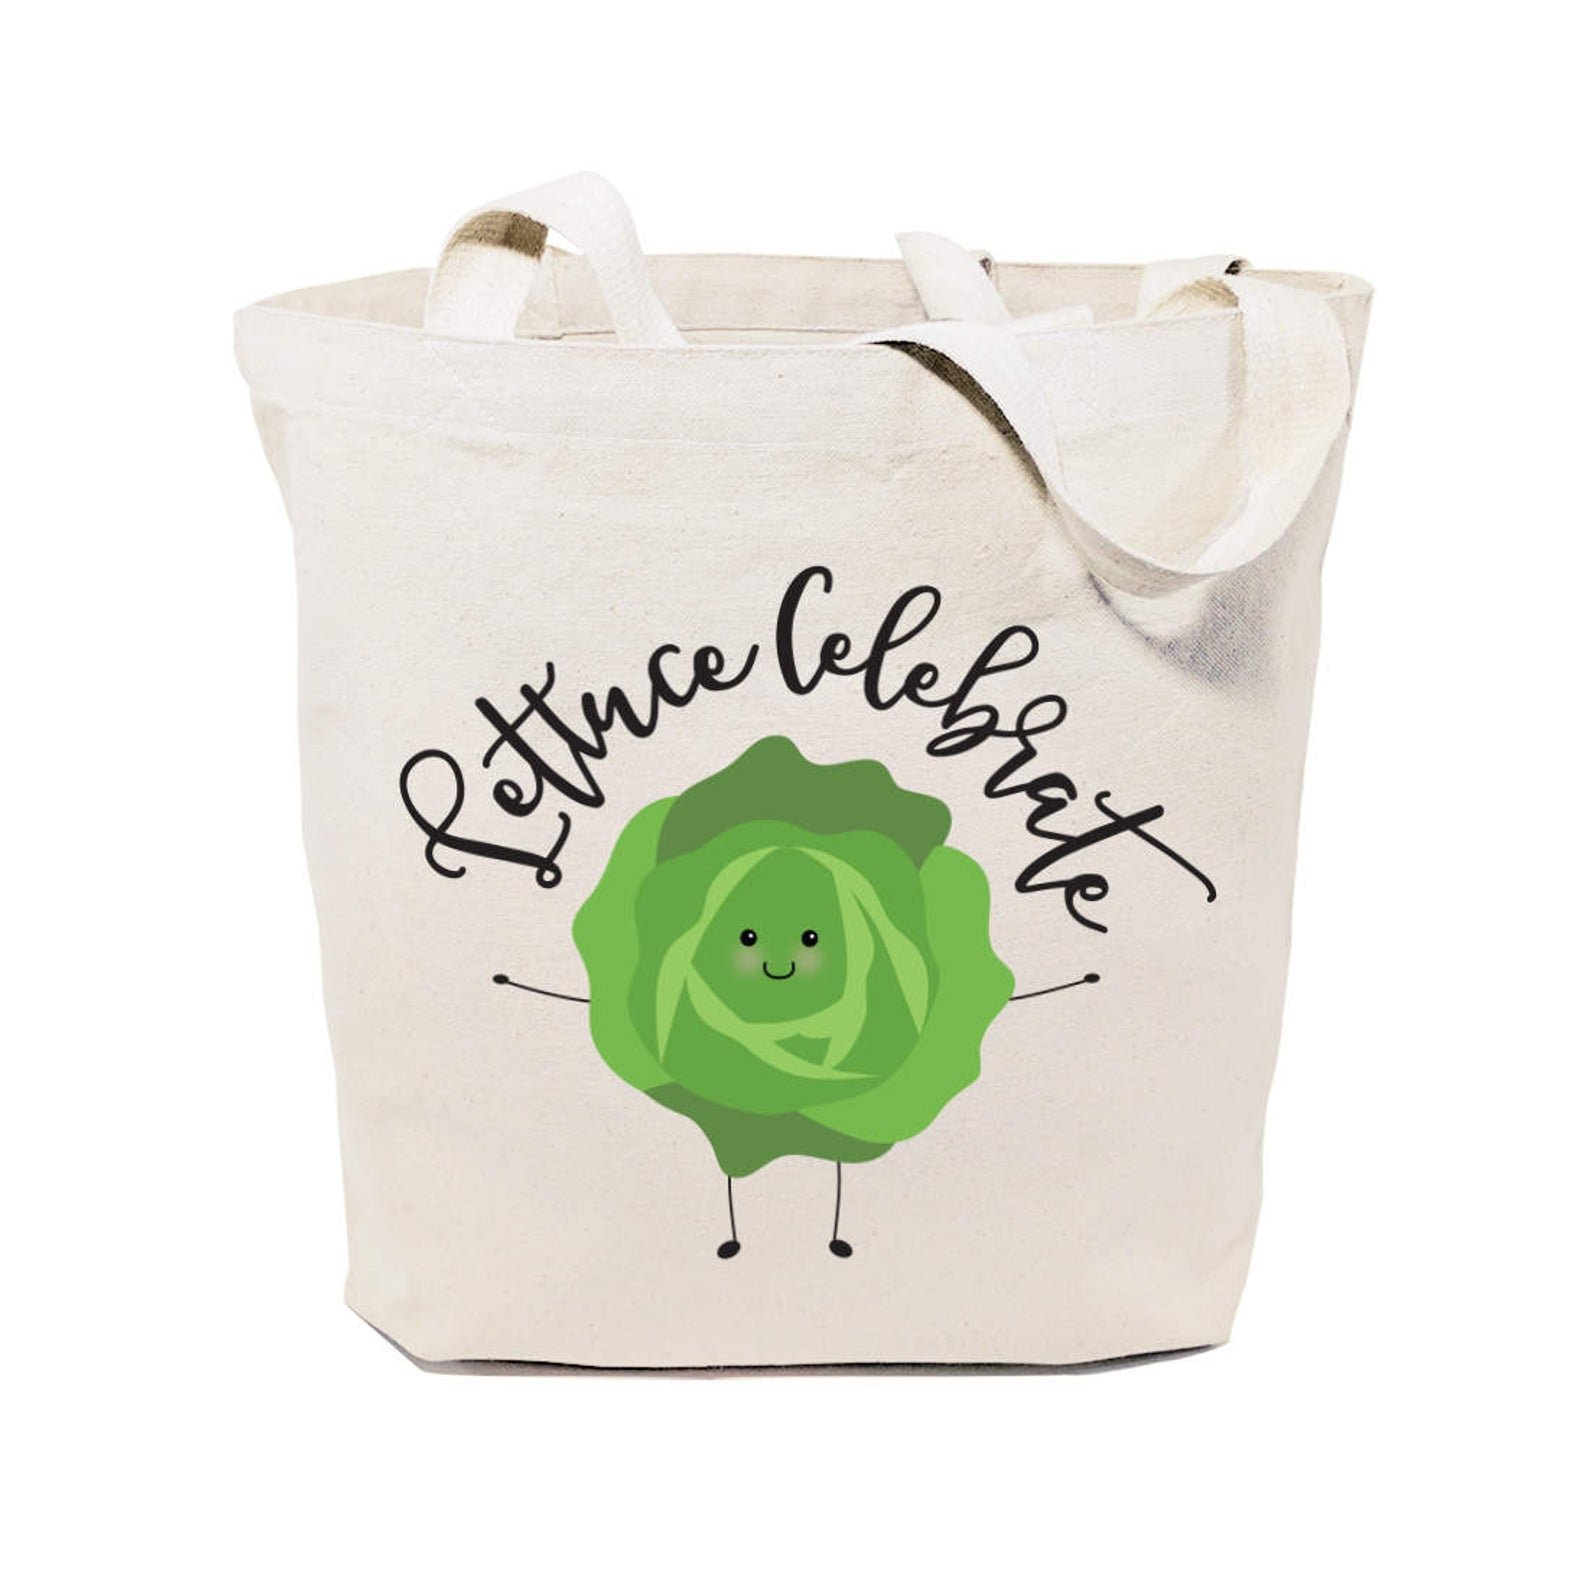 tote bag that says lettuce celebrate with lettuce on it